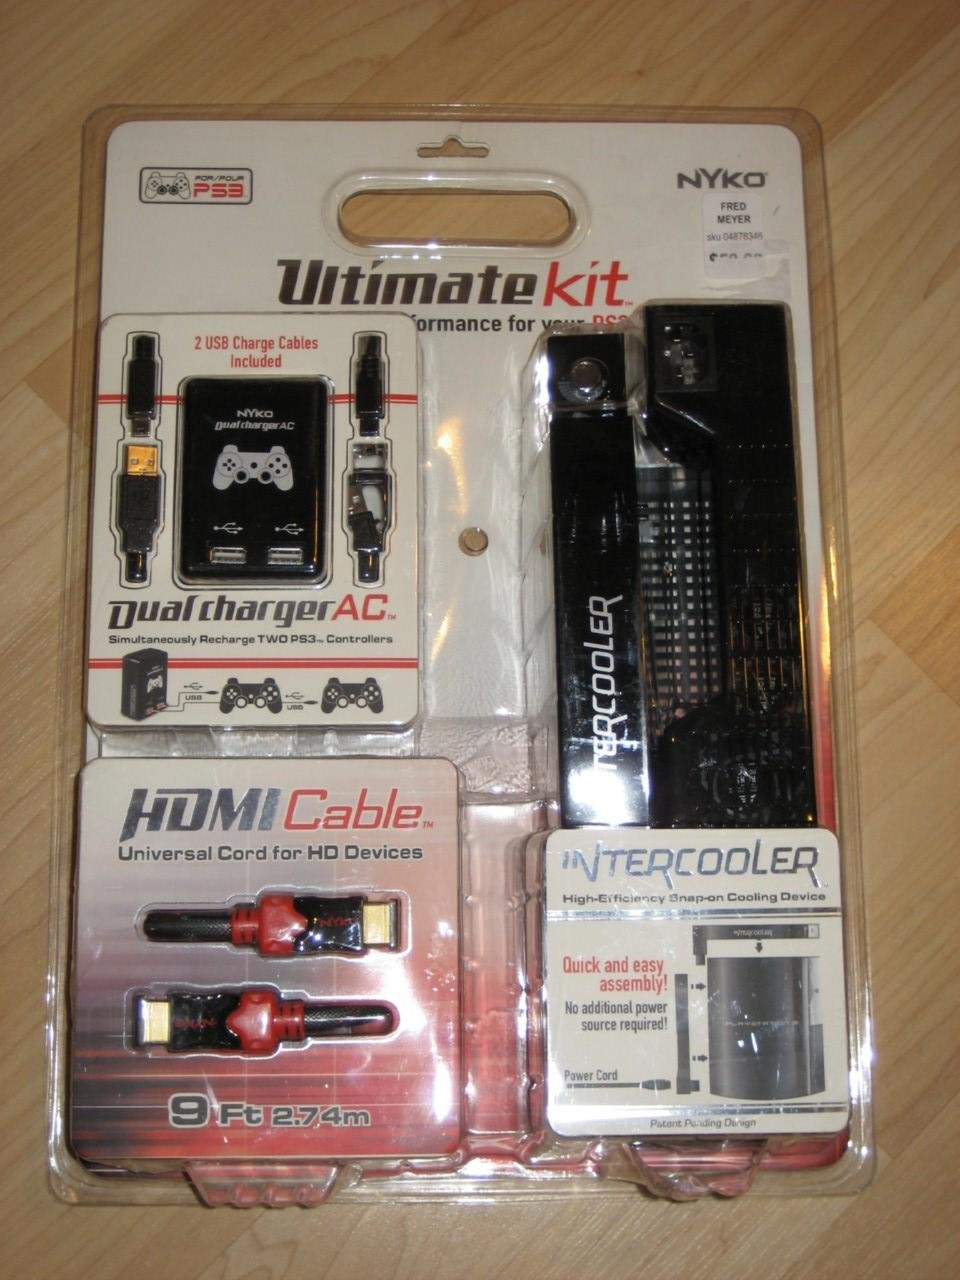 PS3 Ultimate Kit with Dual Charger AC / 9FT HDMI Cable / Intercooler